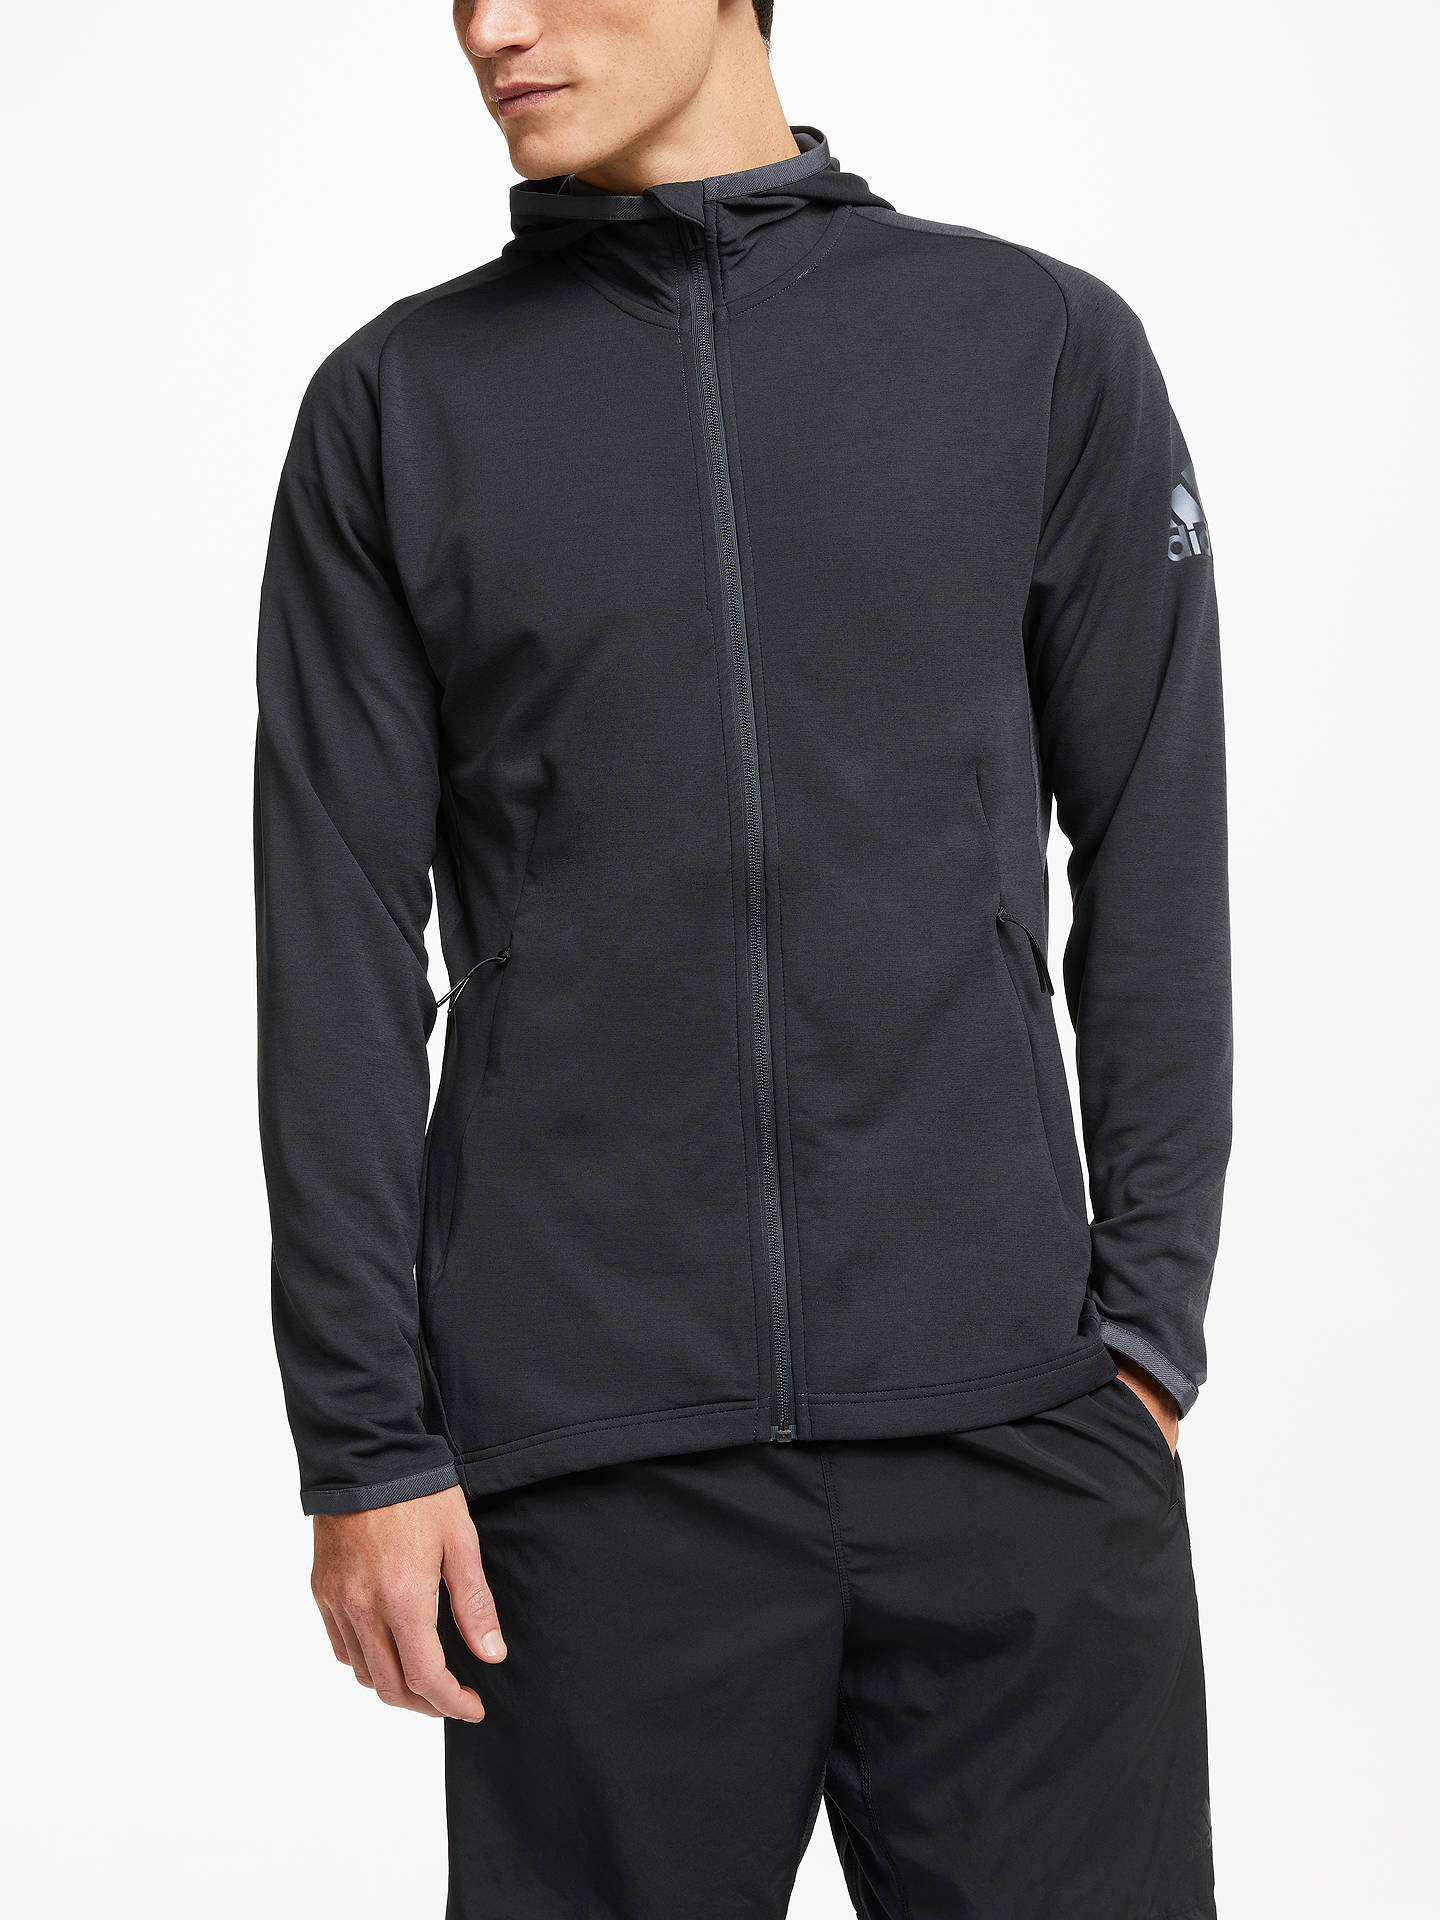 adidas Freelift Climacool Hoodie, CarbonBlack at John Lewis